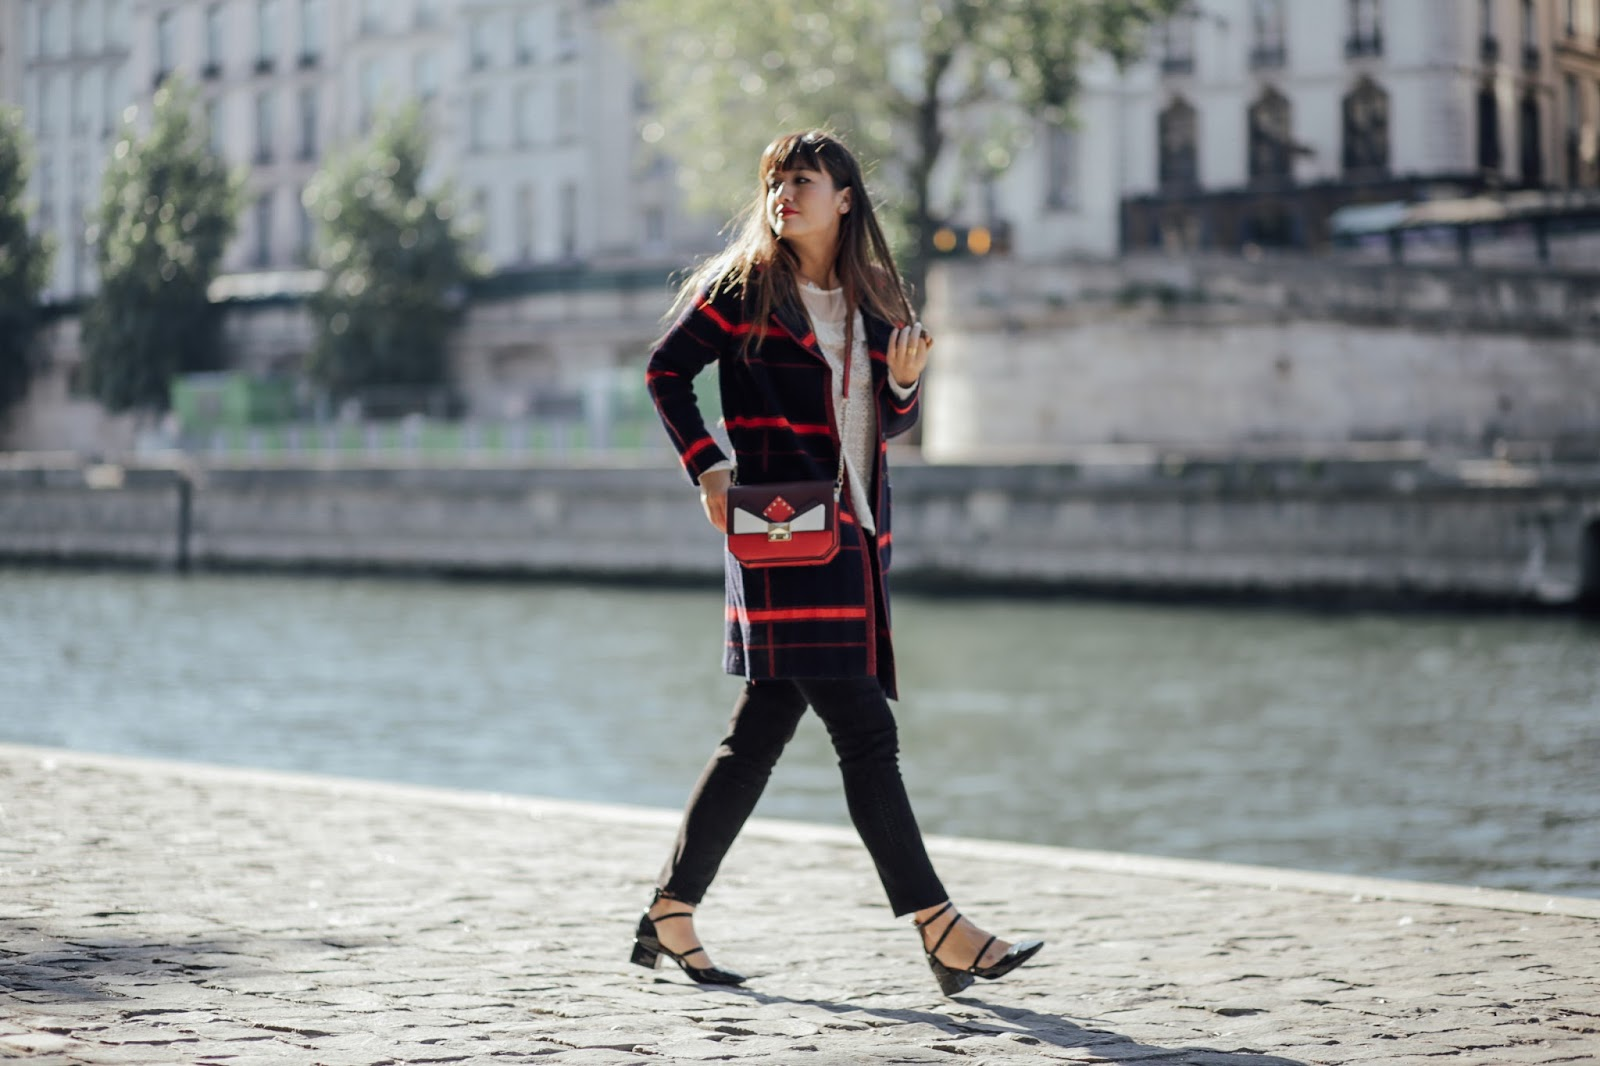 meetmeinparee, paris, blogger, fashion, look, style,streetsyle, Parisian blogger